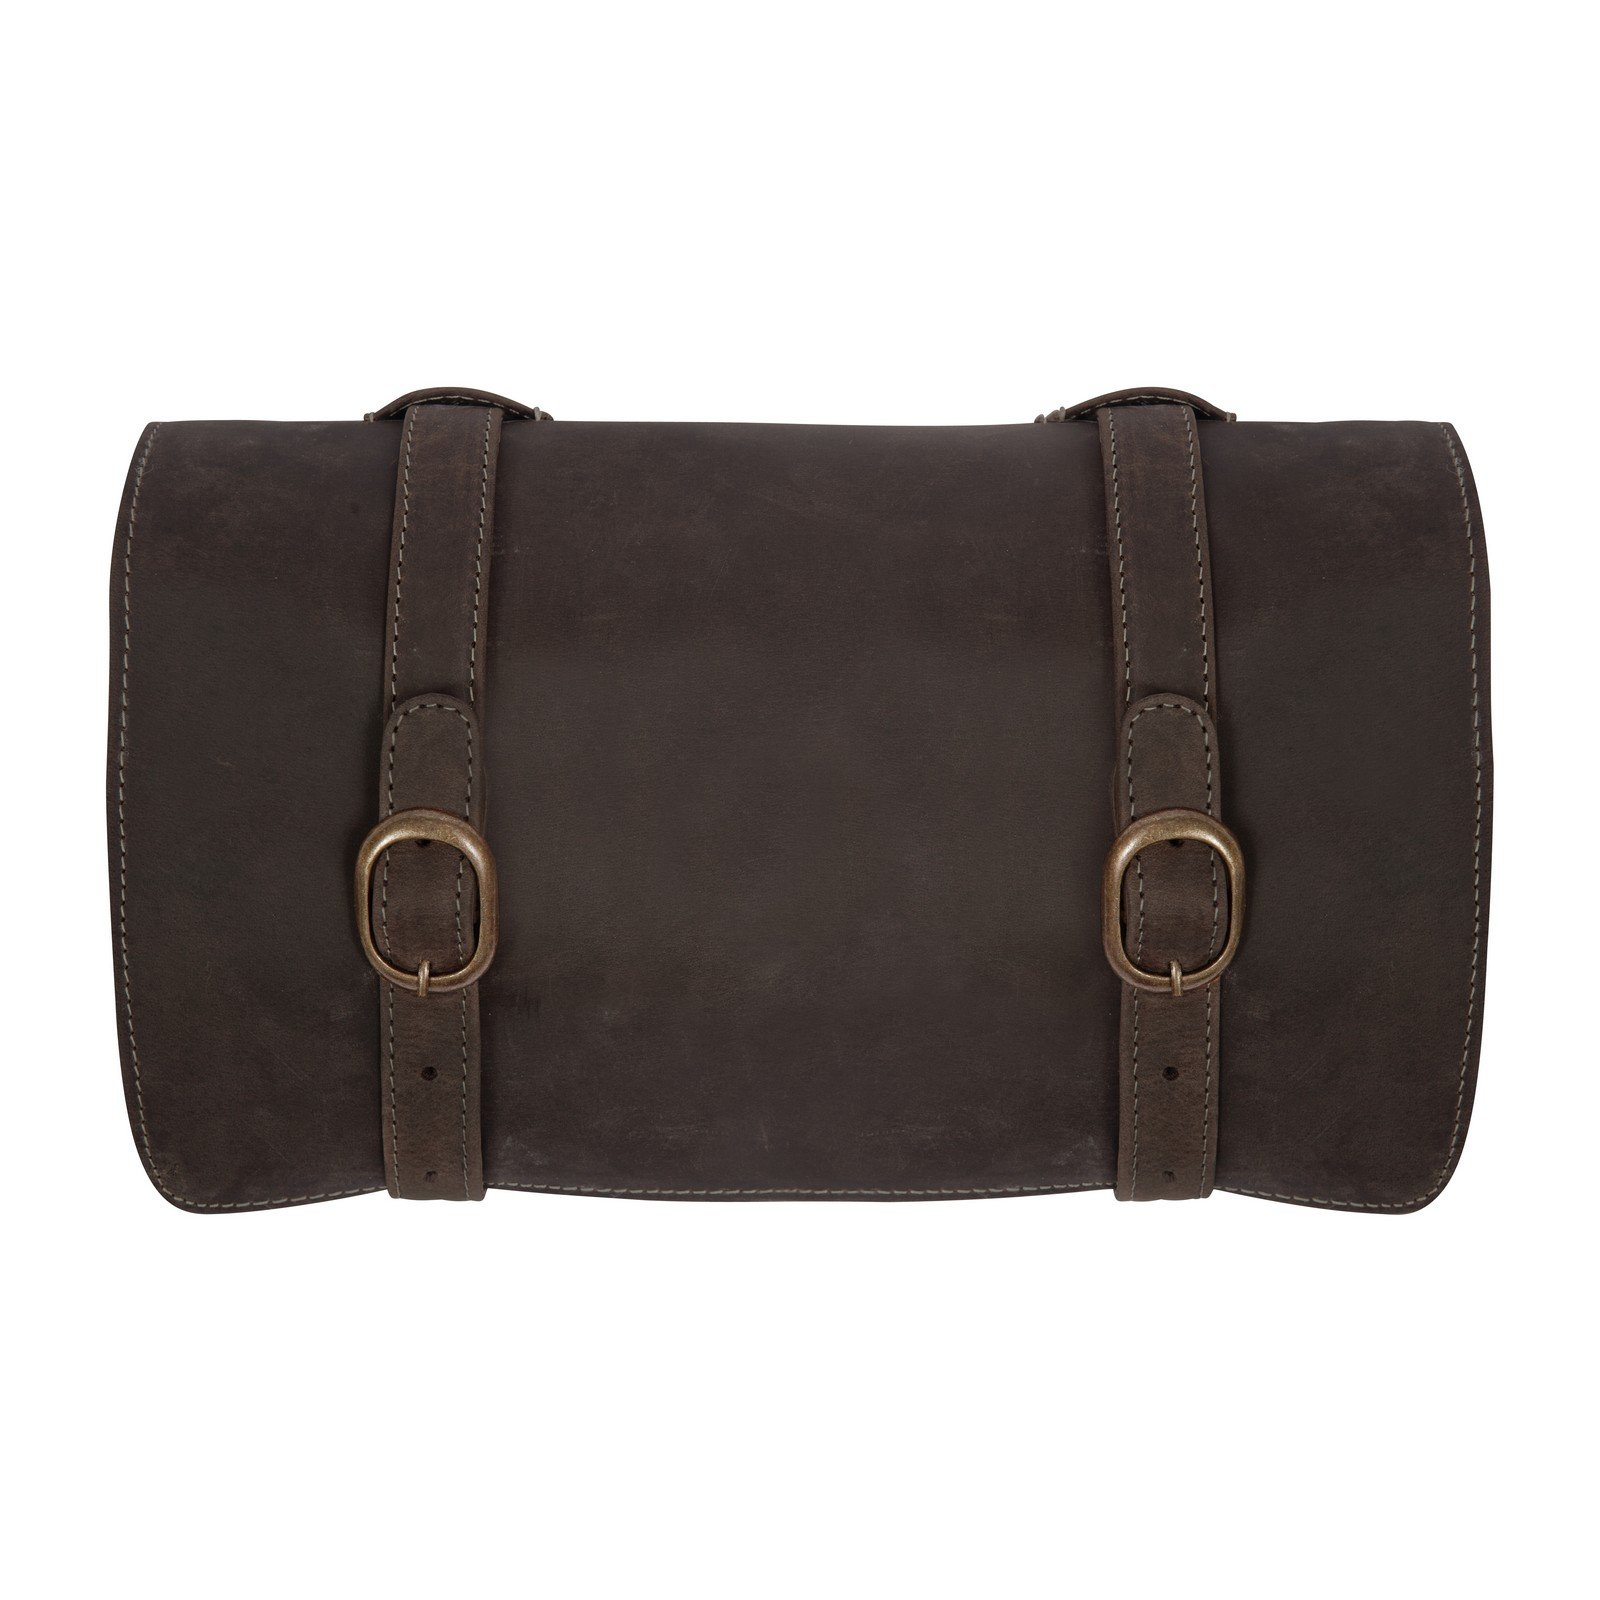 Canyon Outback Buffalo Mountain Hanging Leather Toiletry Bag, Distressed Brown, One Size